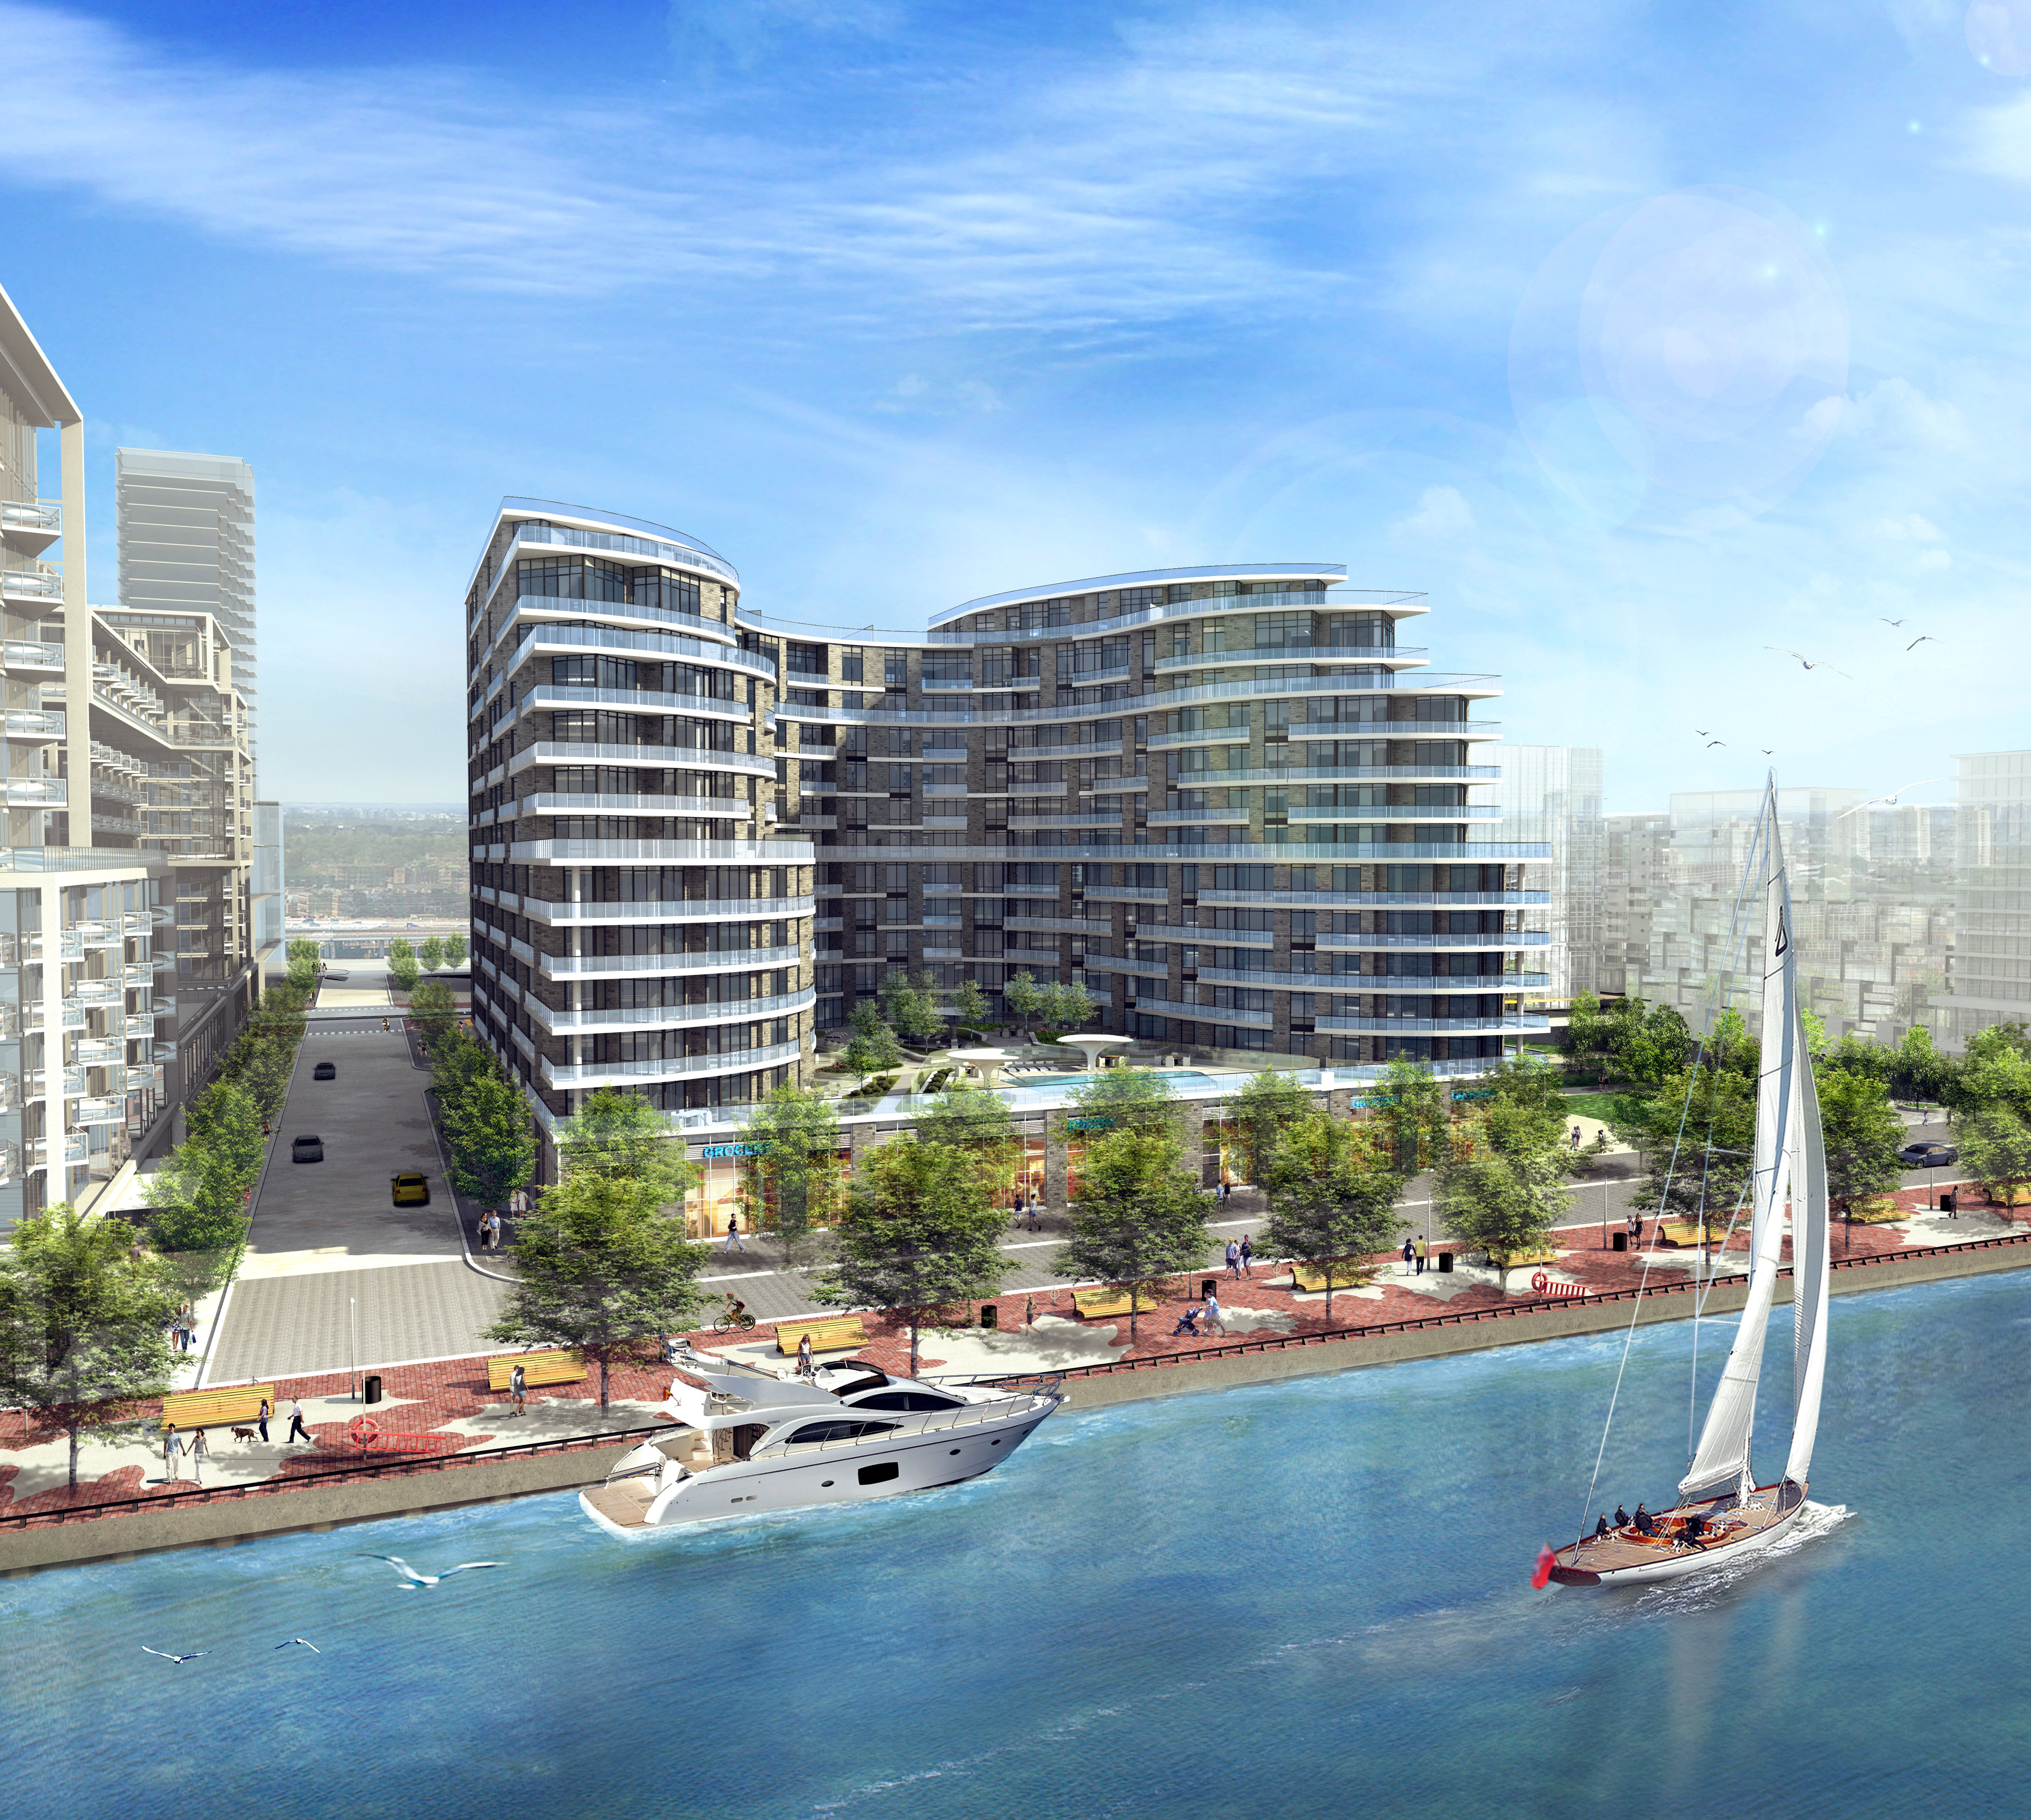 Artist rendering of the Bayside Condos